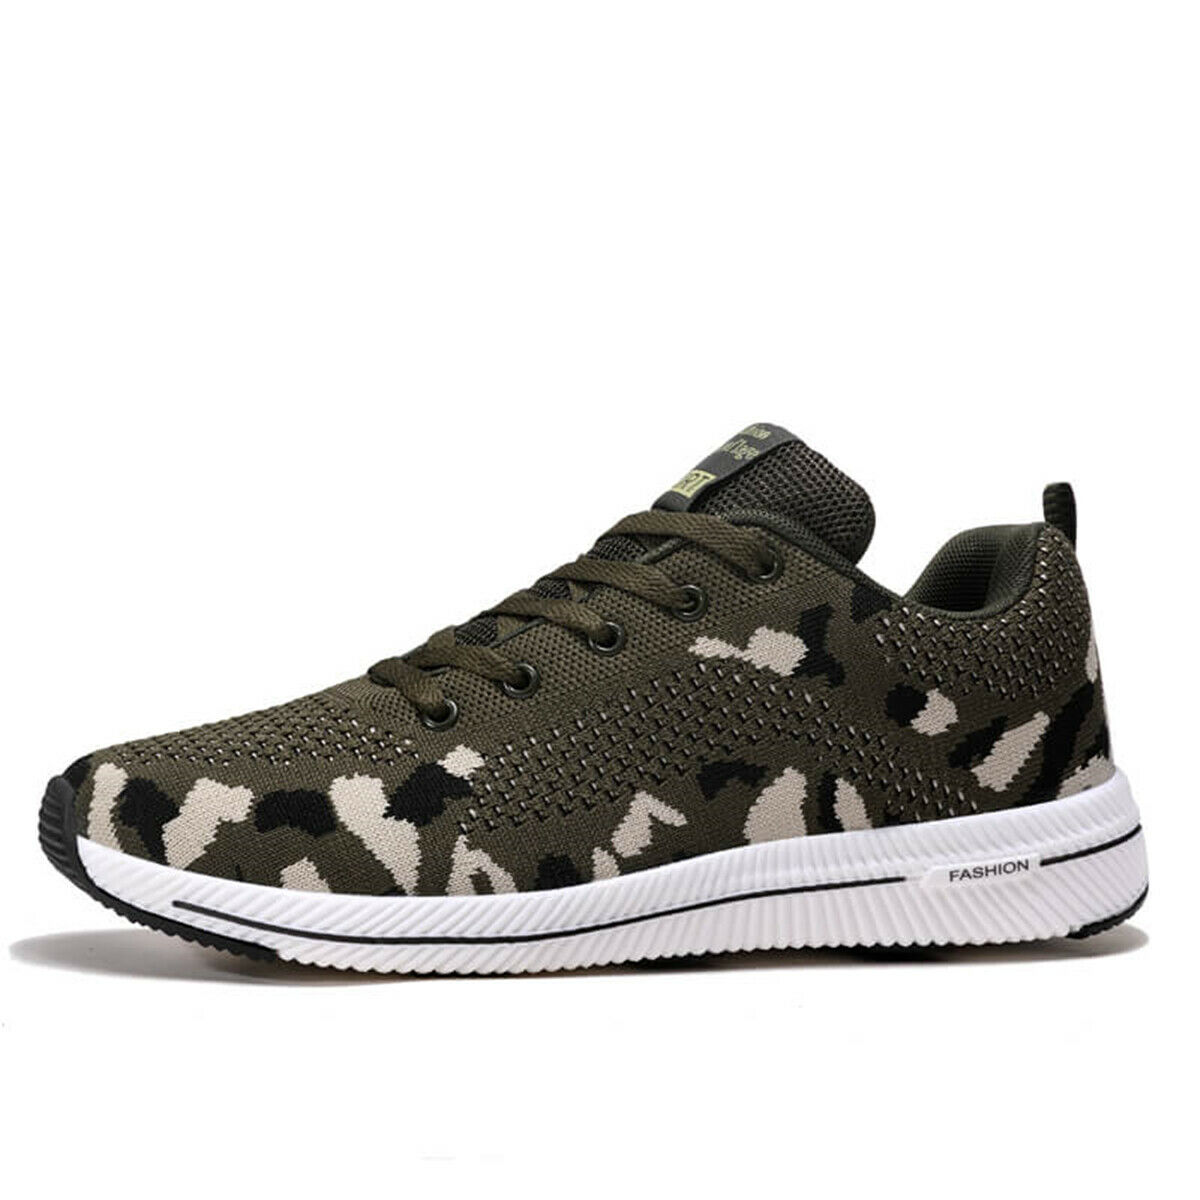 Athletic Sports Mens Fashion Sneakers Casual Running Gym Tennis Walking shoes US